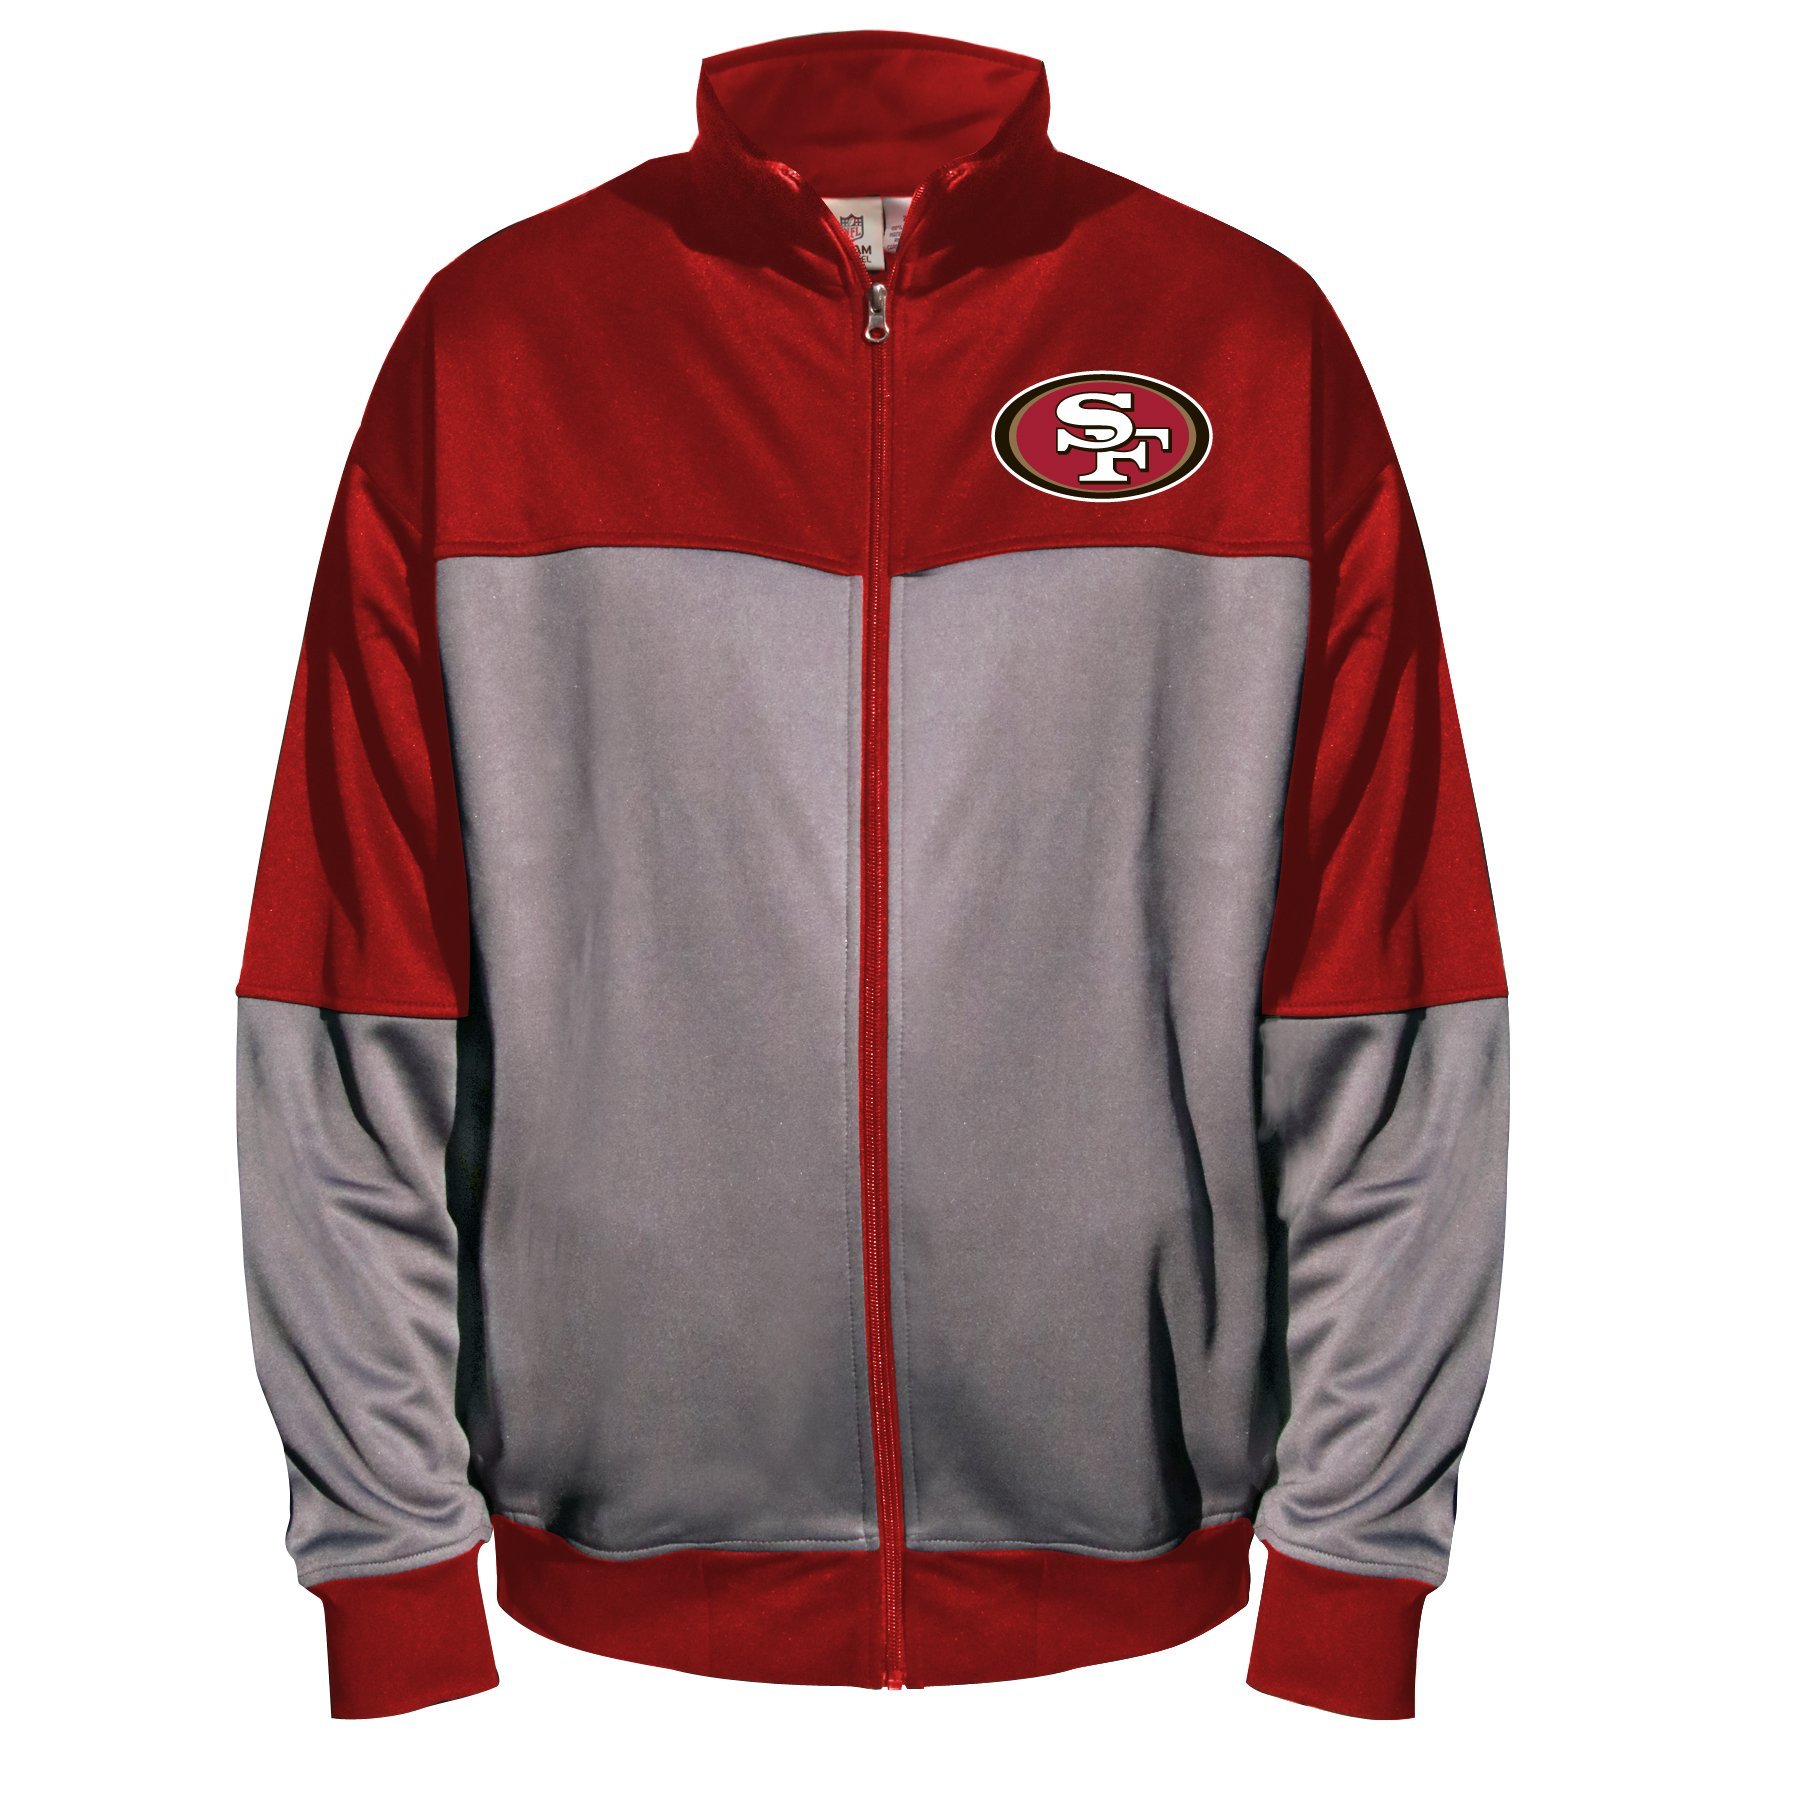 NFL San Francisco 49Ers Unisex Poly fleece Track Jacket, CHARCOAL/Red, 2X/Tall